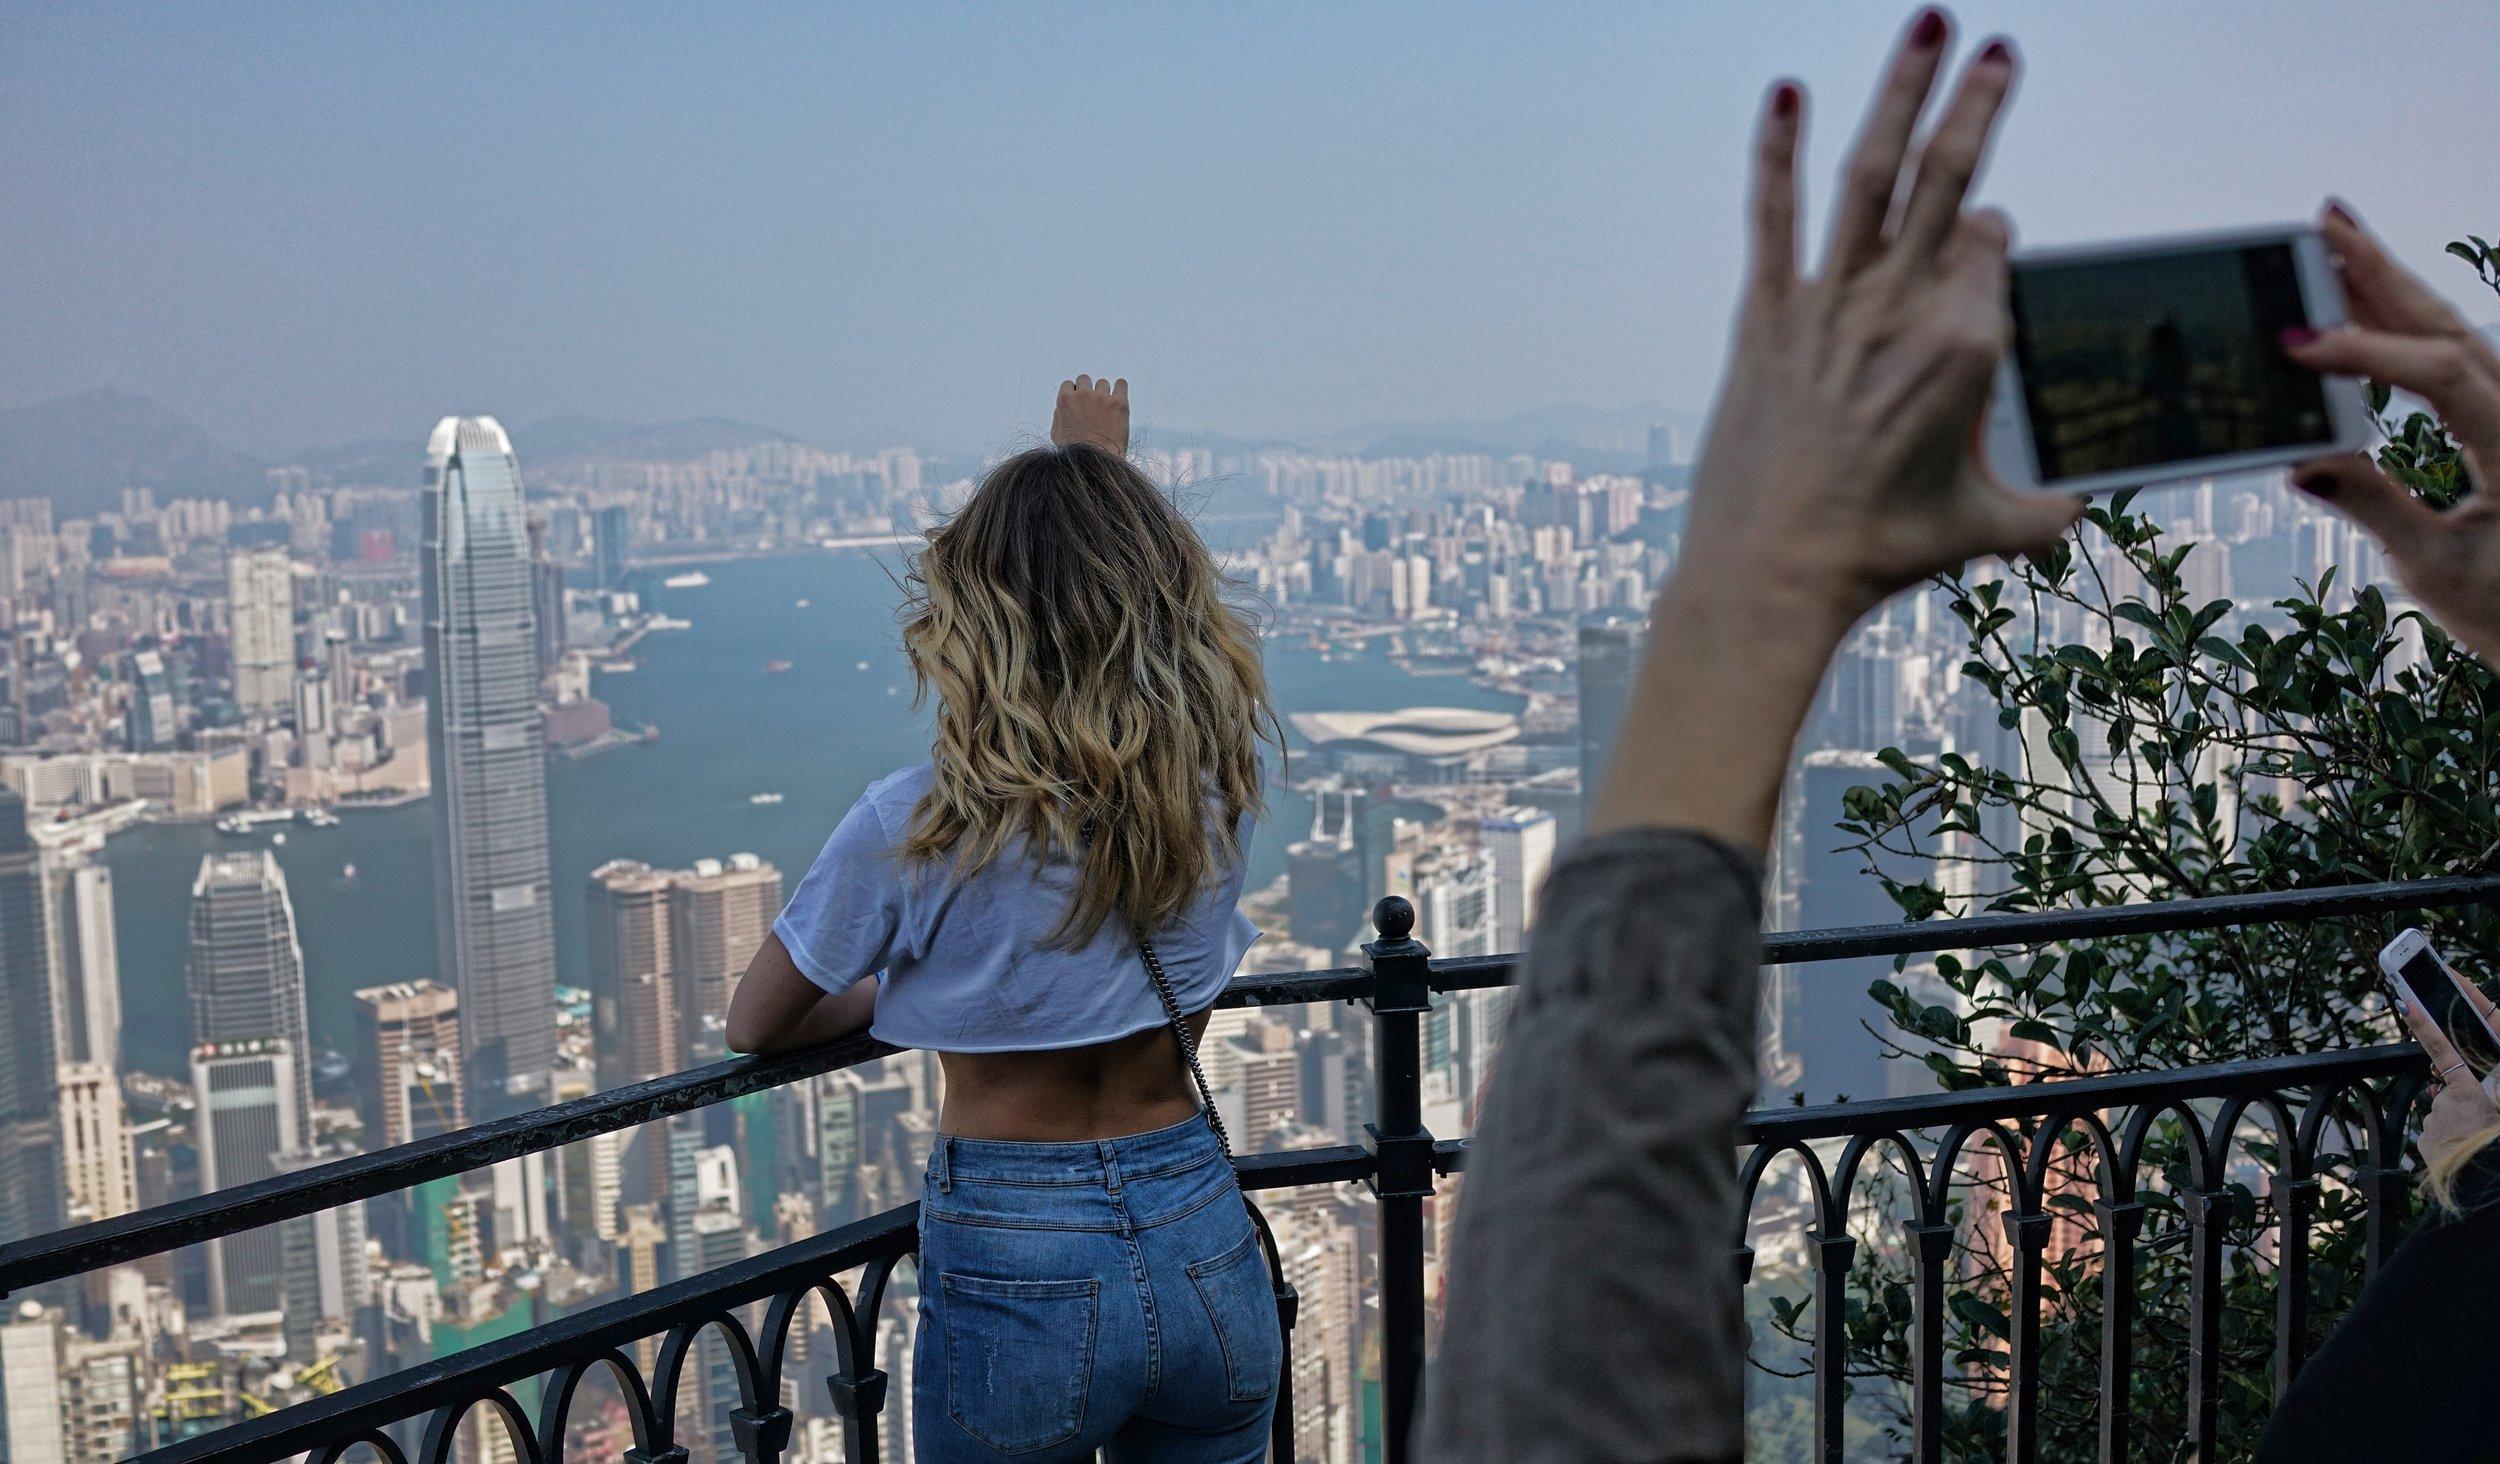 Hong Kong Airport Layover Transit Tours -  Sometimes the view from my famous spot at the Peak is just staggering, oh my - Olivia and the rest of her family loved it!